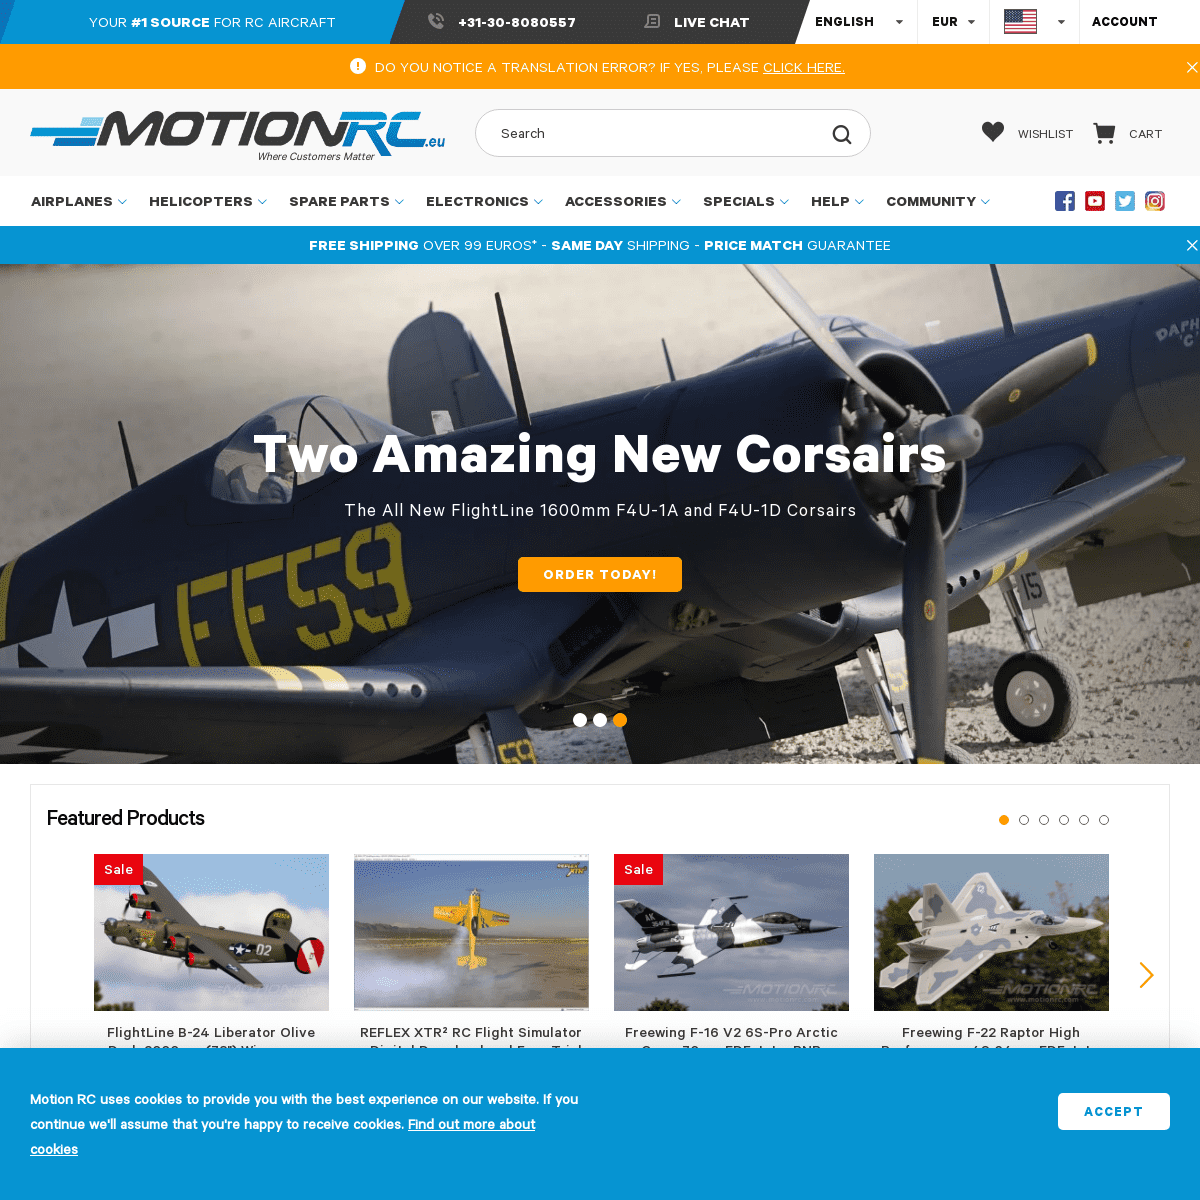 RC Airplanes, Helicopters, Electronics, Accessories - Motion RC Europe